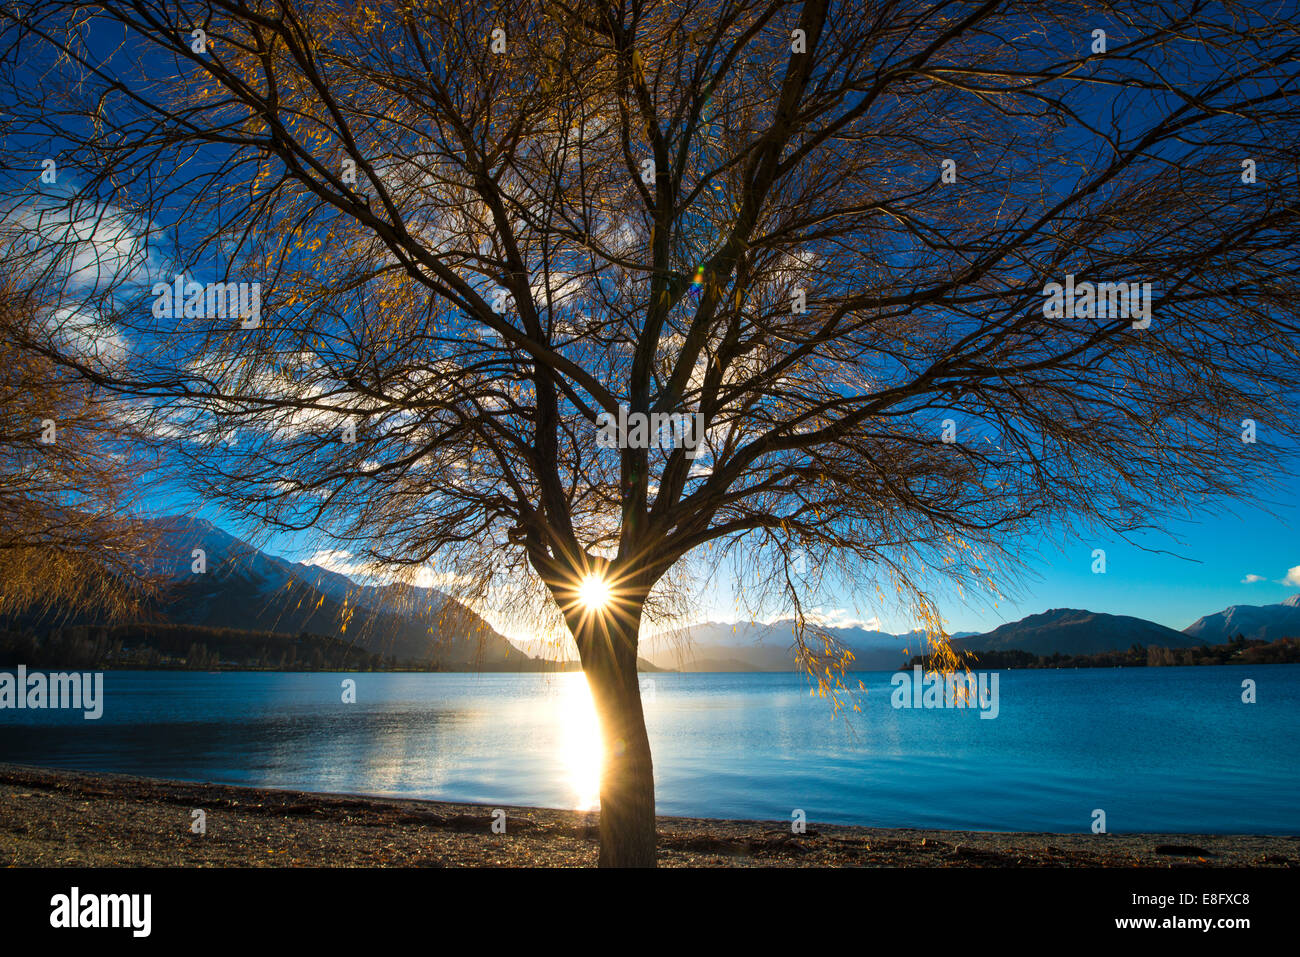 New Zealand, Lake Wanaka, Sun shining through tree - Stock Image